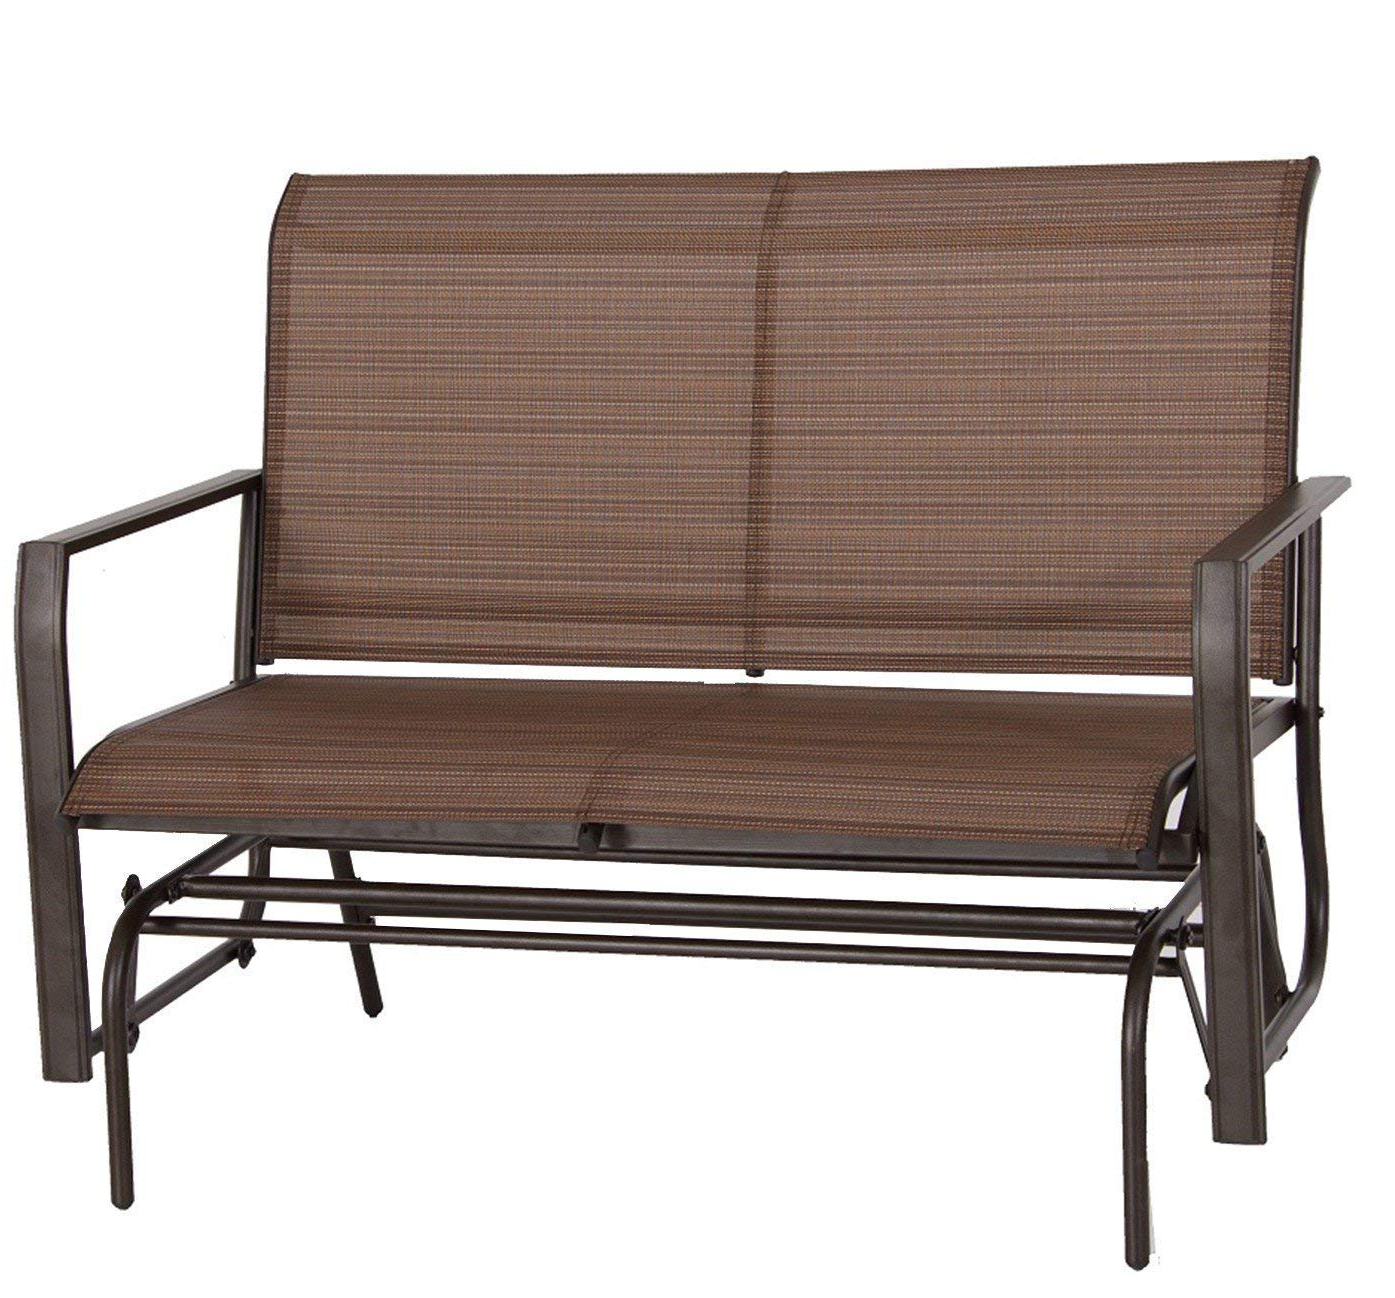 Most Recent Rocking Love Seats Glider Swing Benches With Sturdy Frame For Kozyard Cozy Two Rocking Love Seats Glider Swing Bench/rocker For Patio, Yard With Textilence Seats And Sturdy Frame (tan) (View 1 of 30)